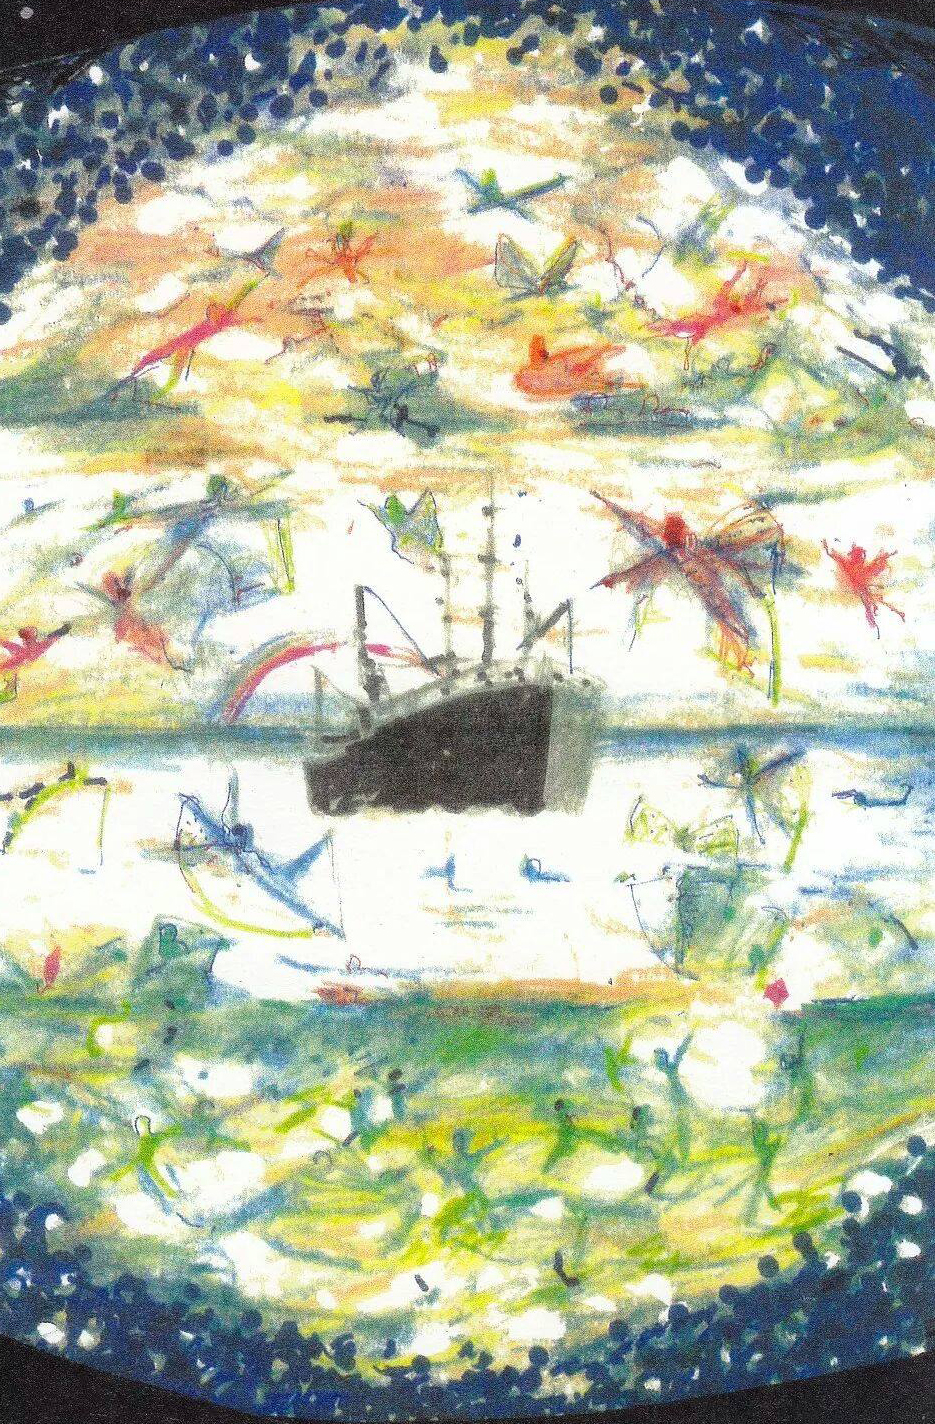 Sam Moree Art - The Four Elemental Families surrounding the boat